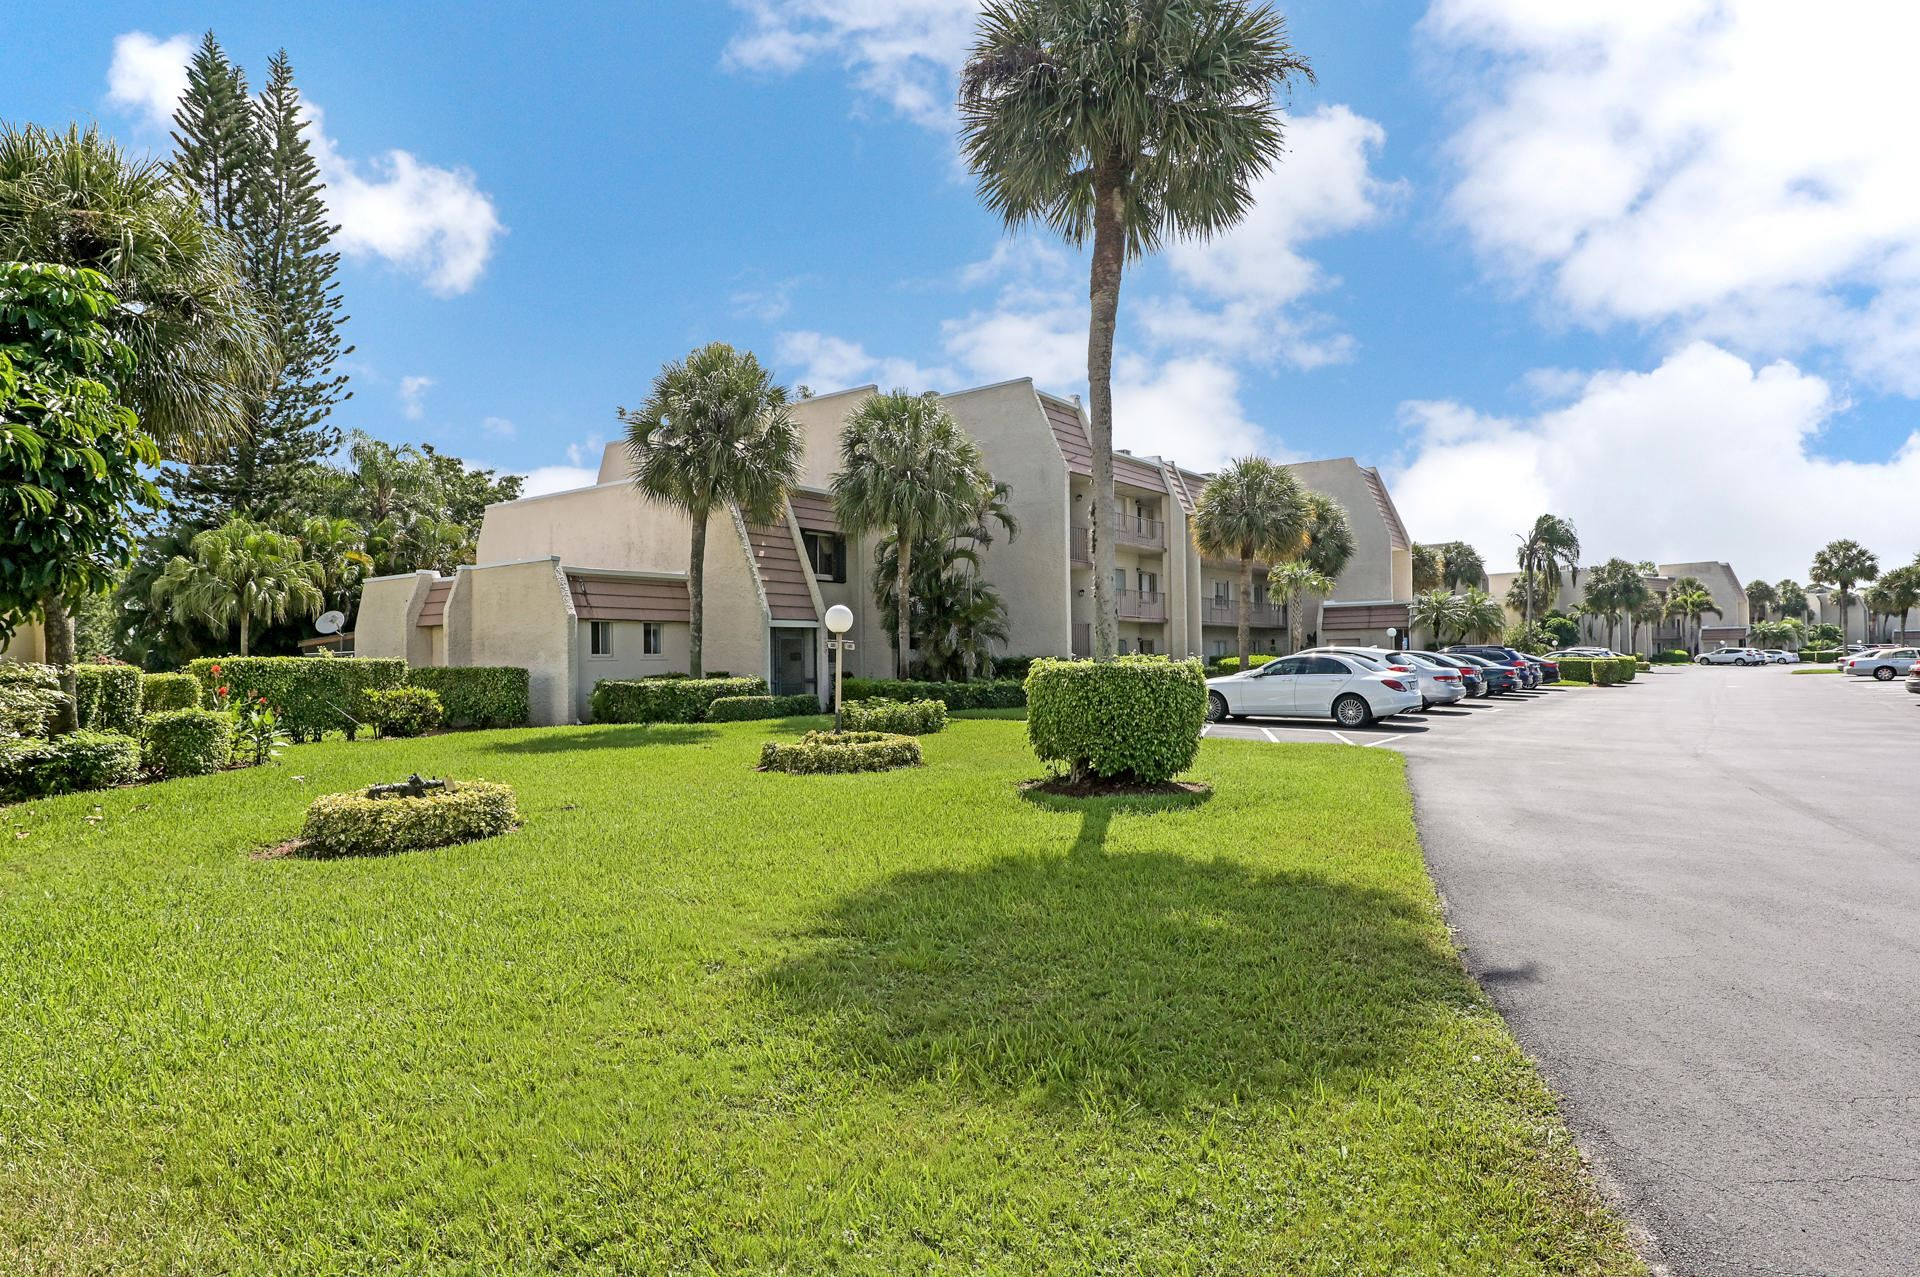 4070 Tivoli 307 Court #307, Lake Worth, FL 33467 - #: RX-10692606